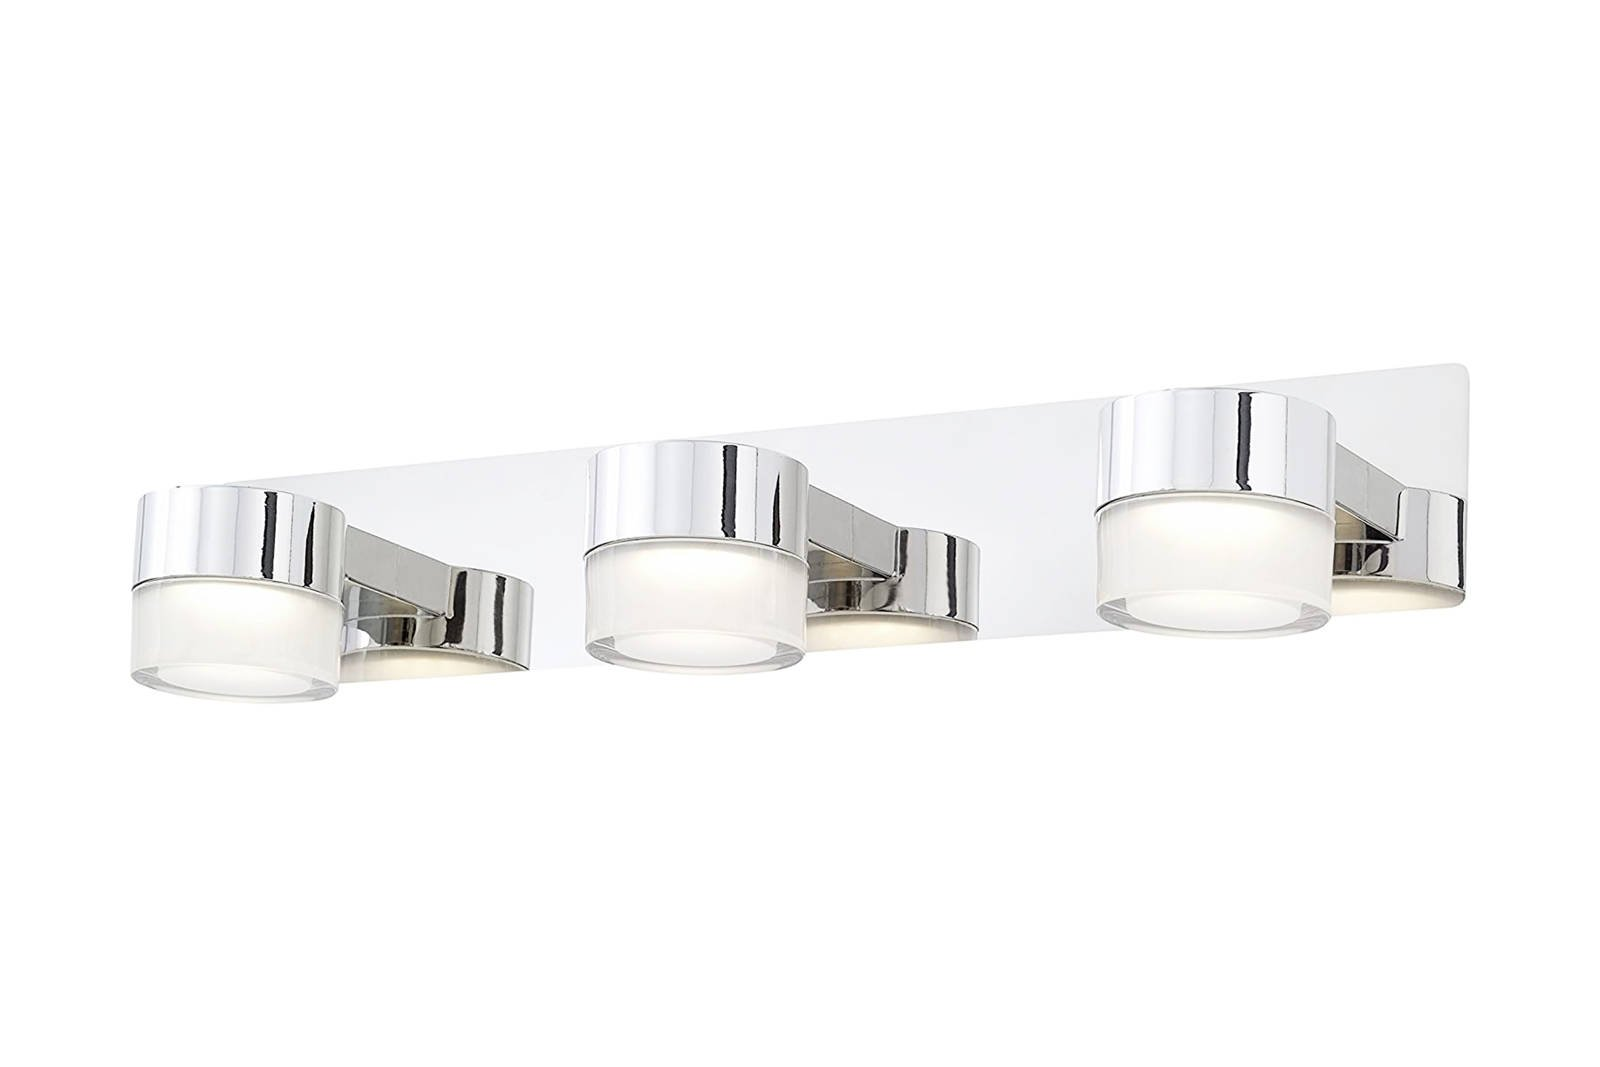 Wall lamp above the mirror Briloner 2247-038 15W LED